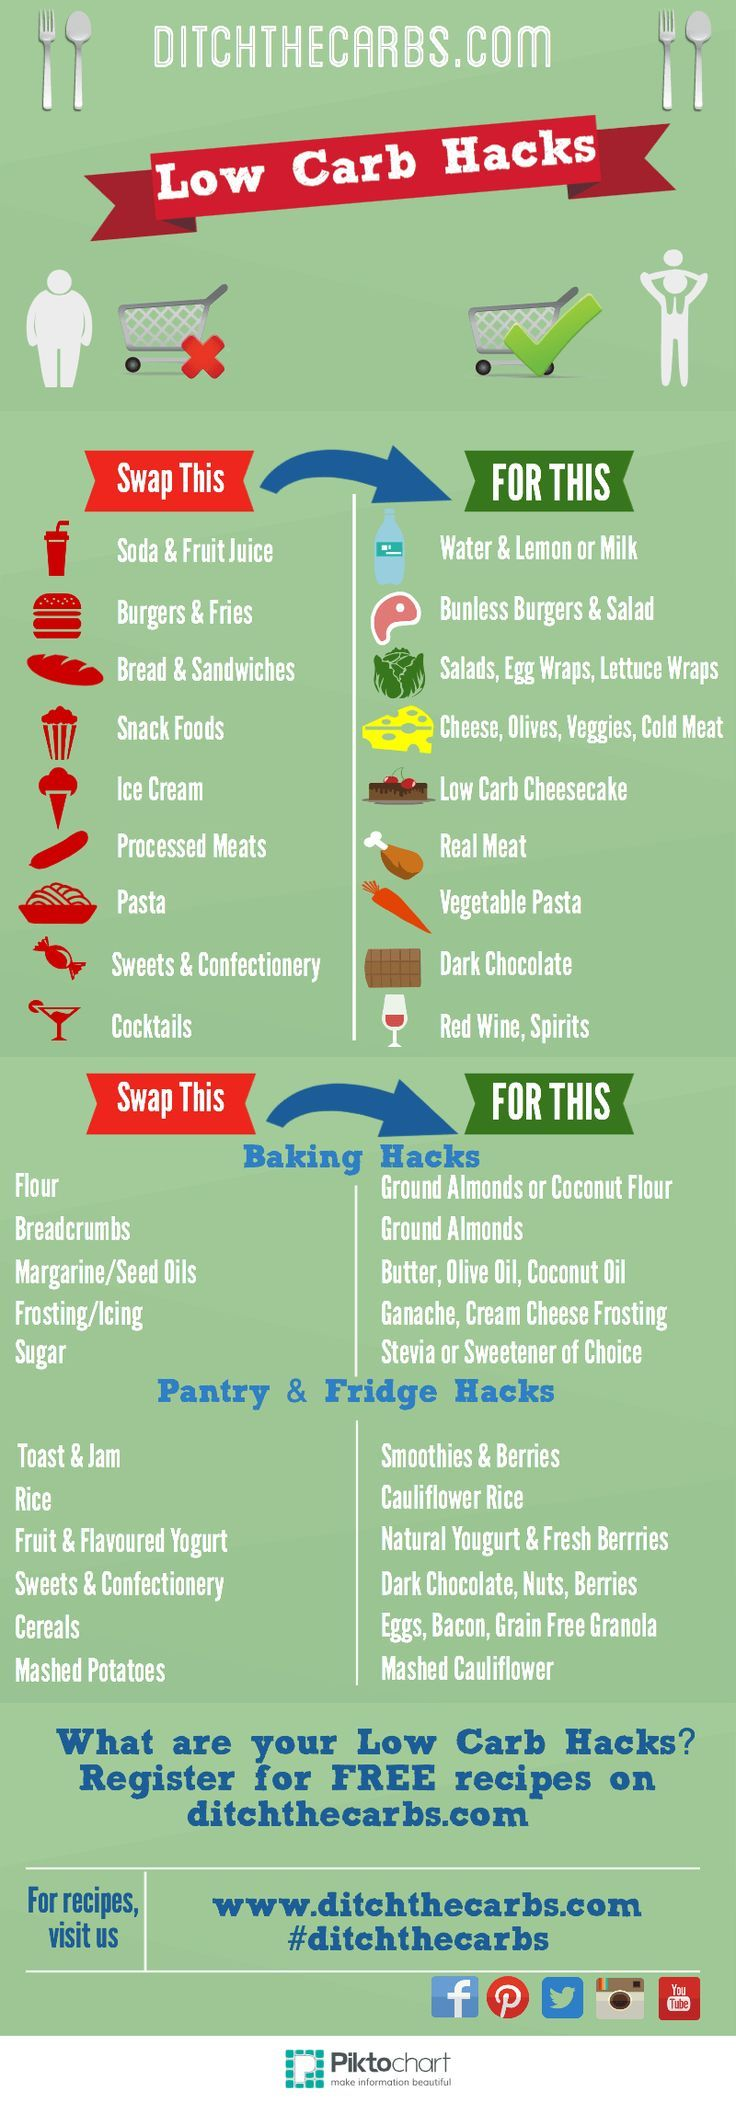 "What to eat if your diabetic Low Carb Hacks ""Comment: Milk for low carb? Not really... But most of the others look good! Also, you can make homemade low carb ice cream. ;)"" Low Carb Hacks 